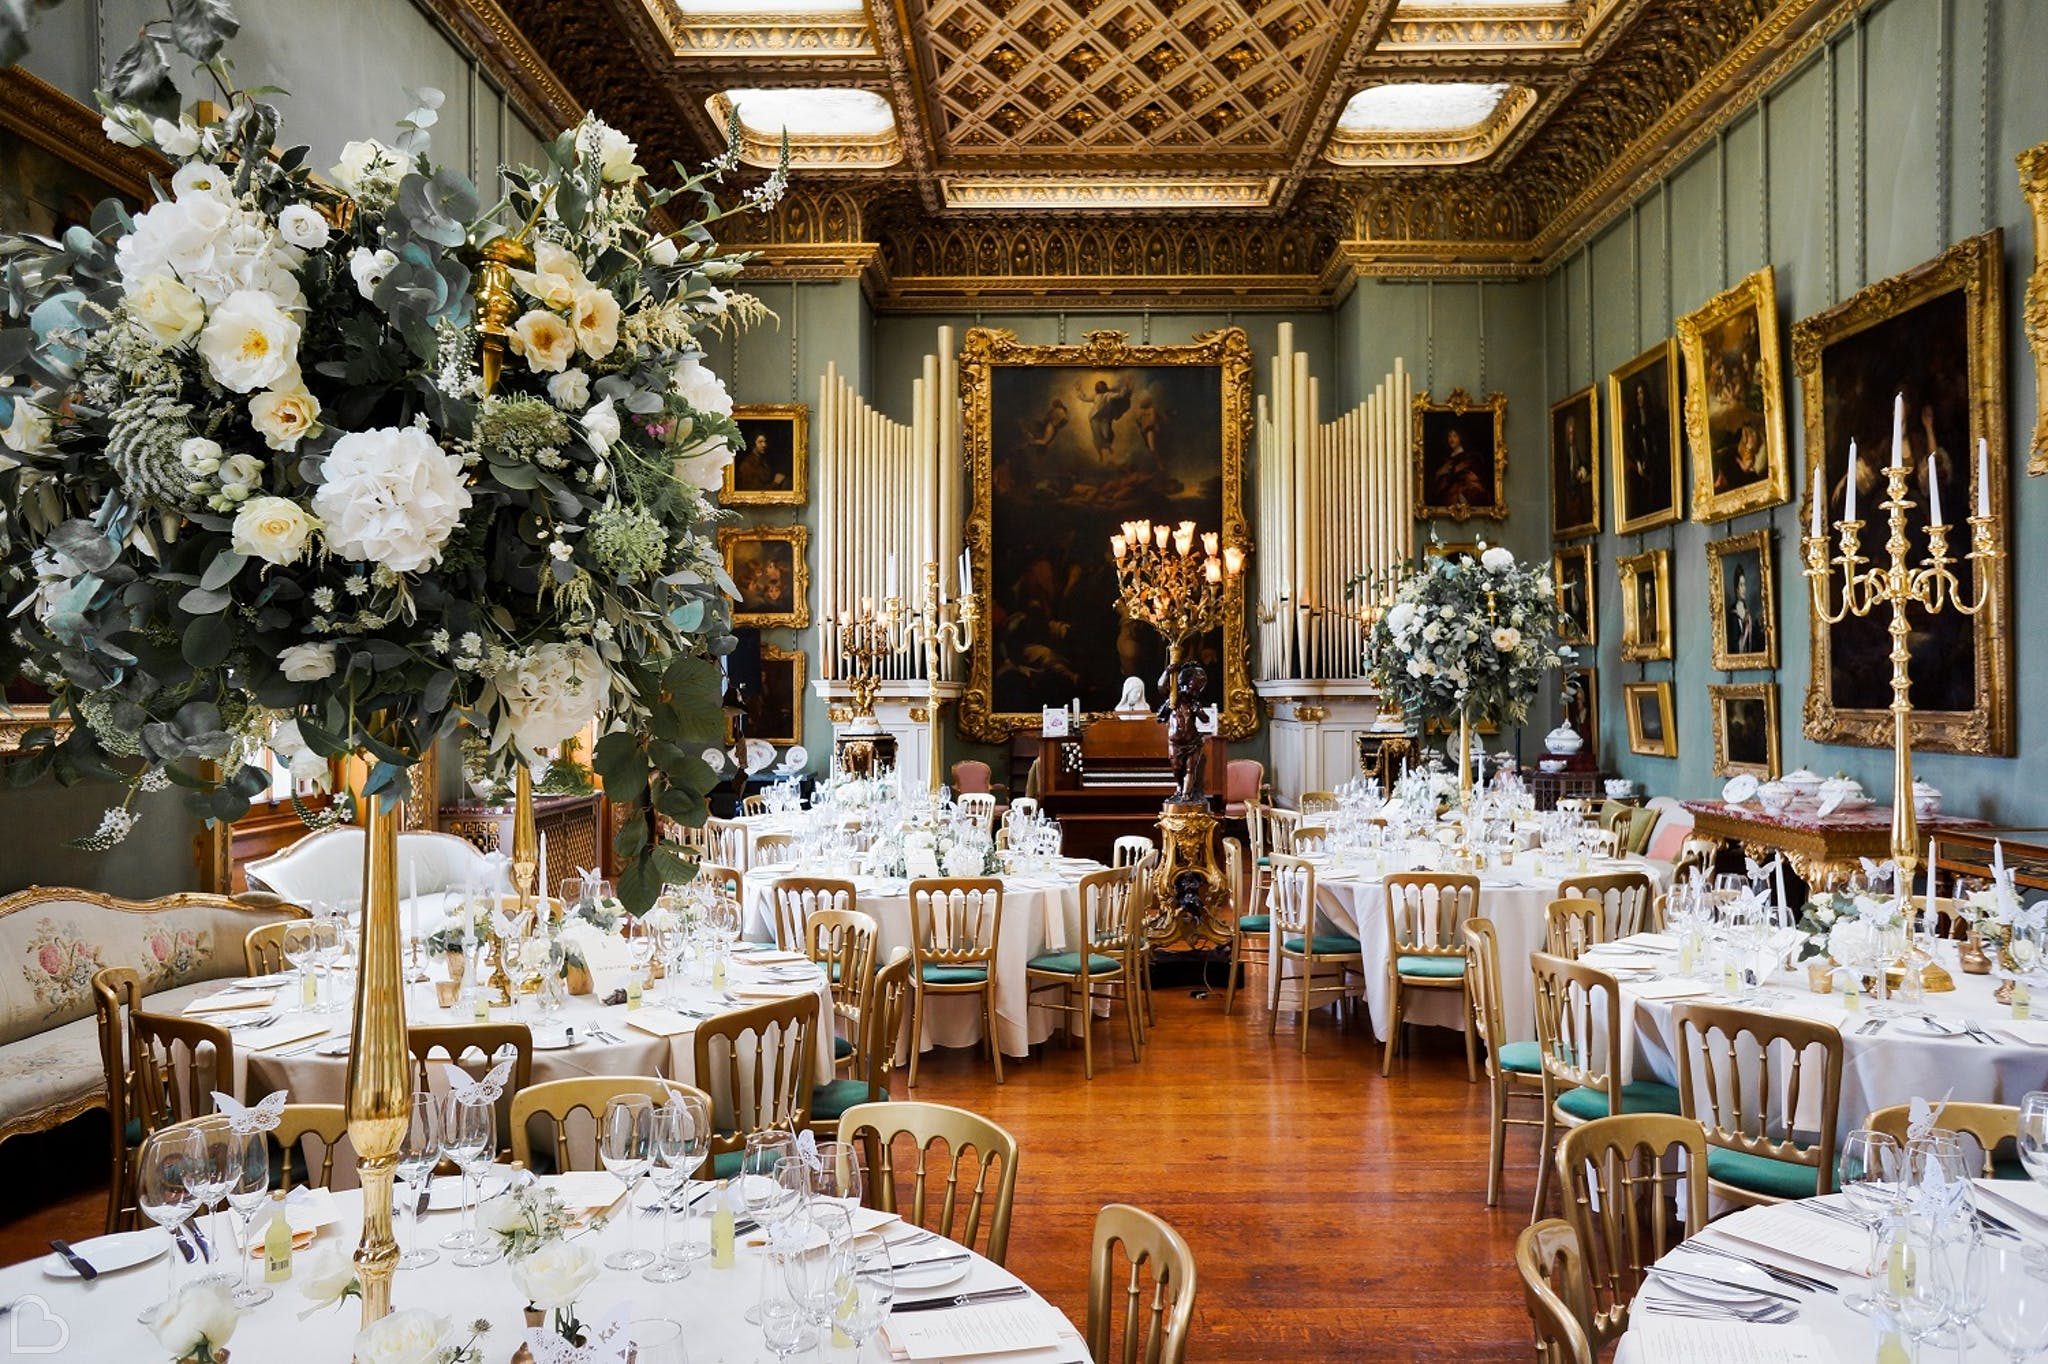 Somerley dining room set up for wedding.